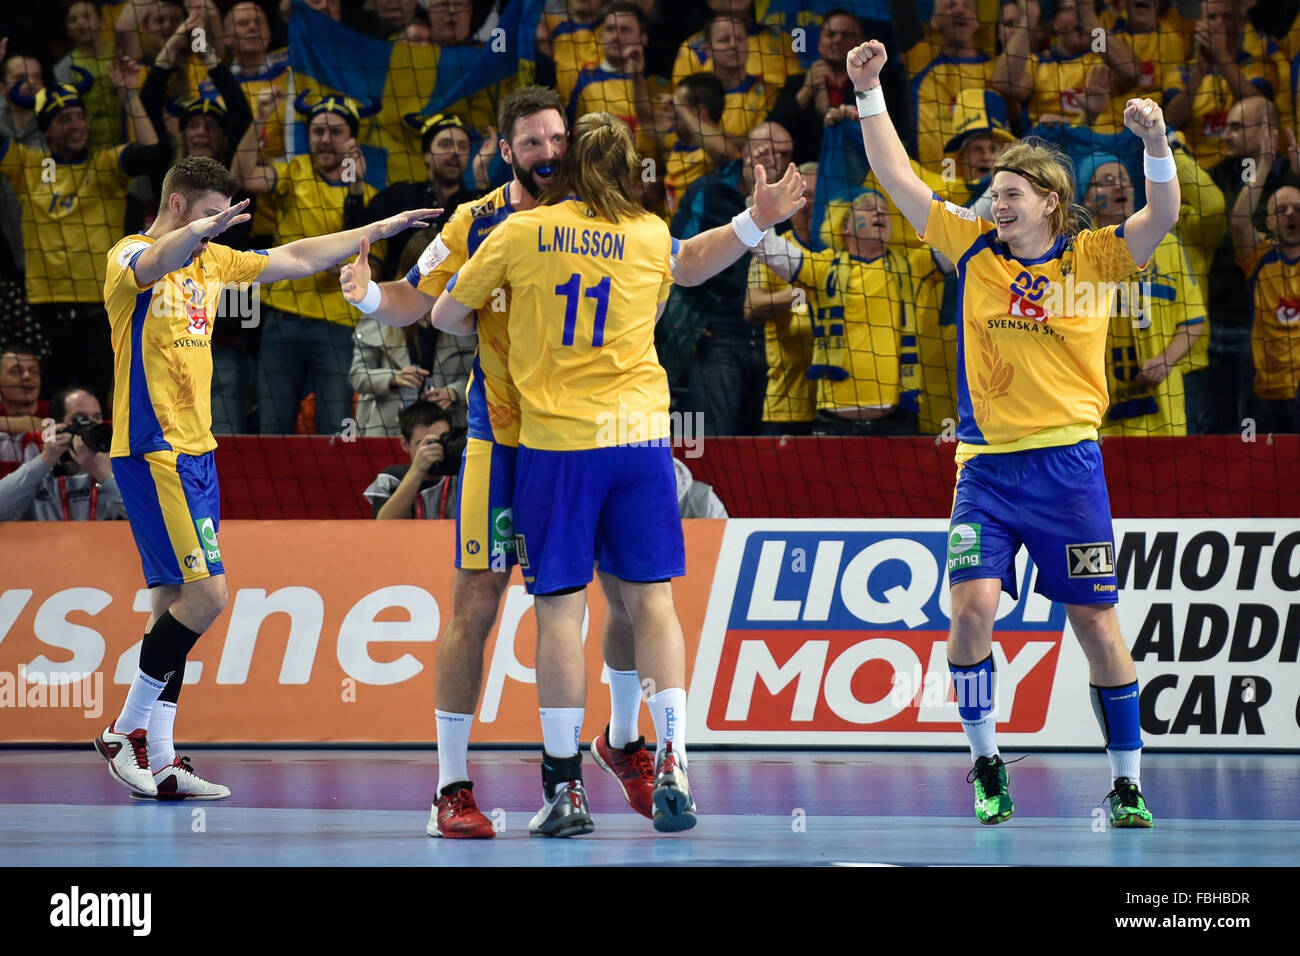 Wroclaw, Poland. 16th January, 2016. European Championships in Men's Handball, EHF EURO 2016 Group C match Sweden - Stock Image